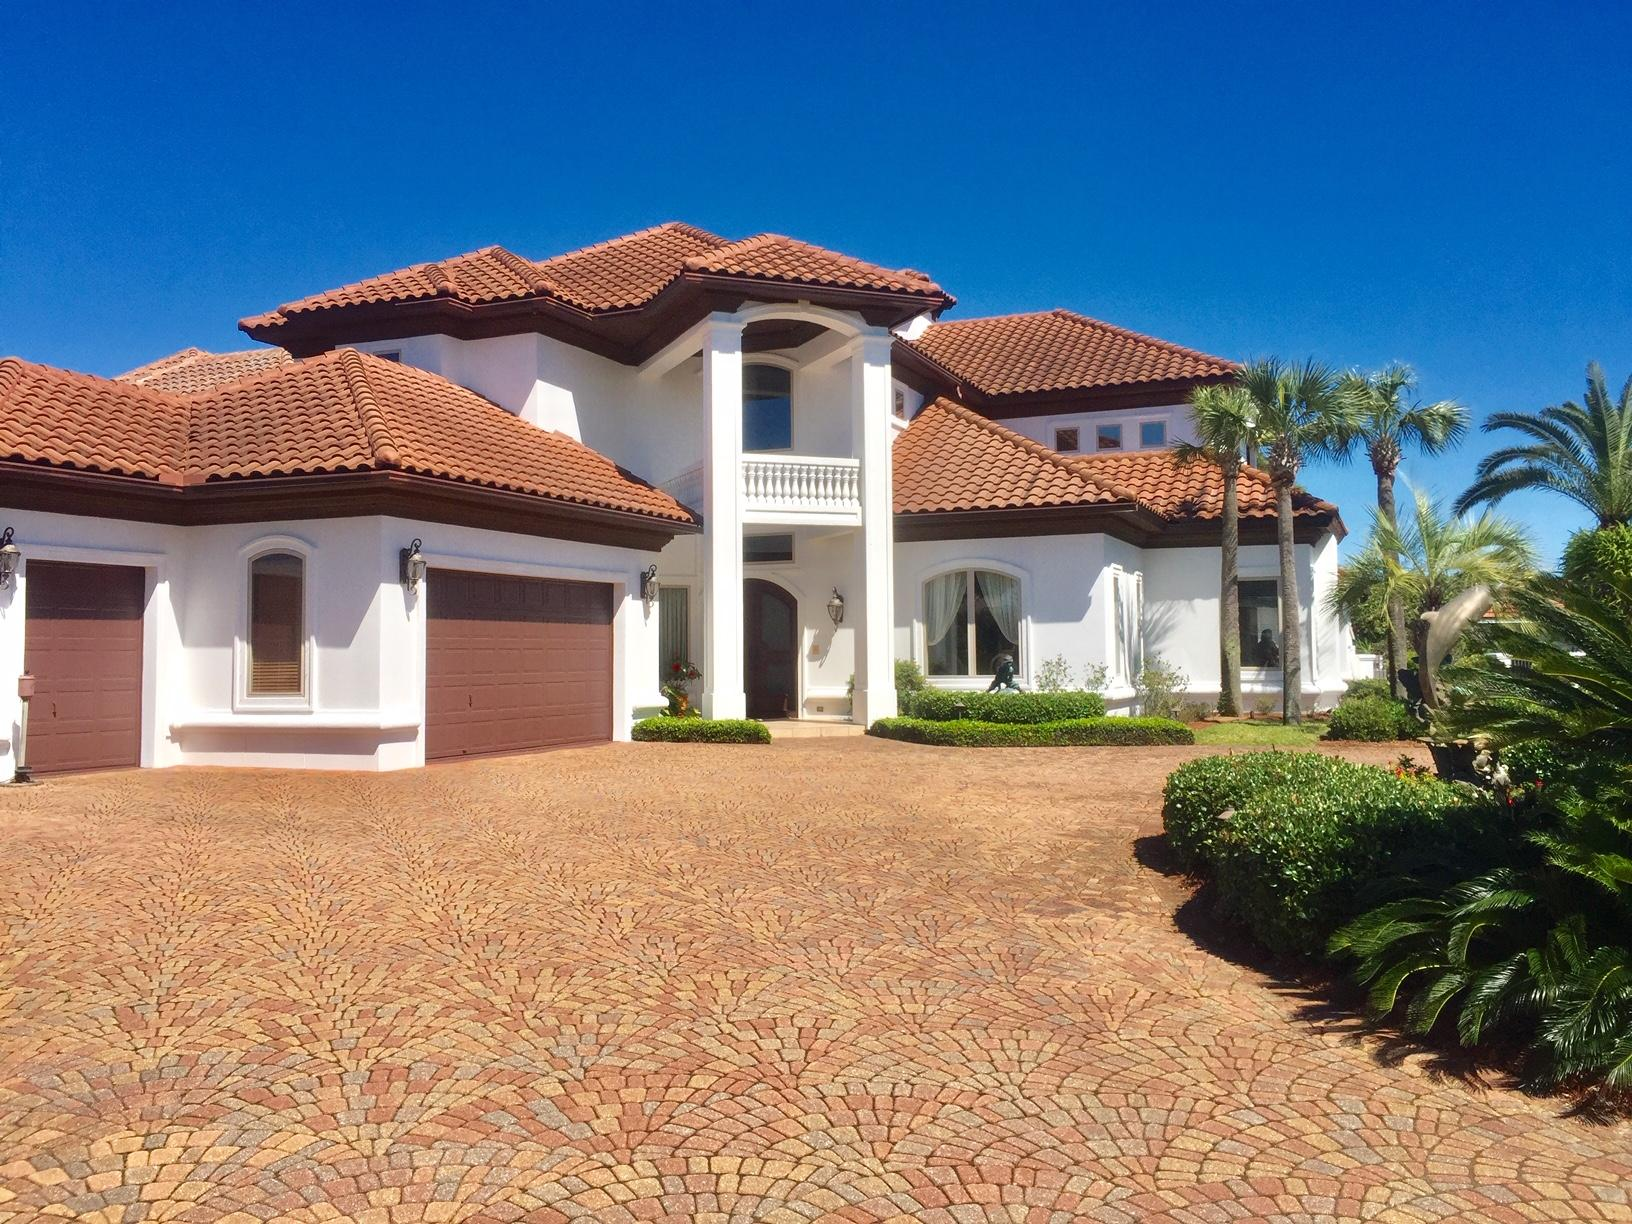 Photo of home for sale at 291 Corinthian, Destin FL